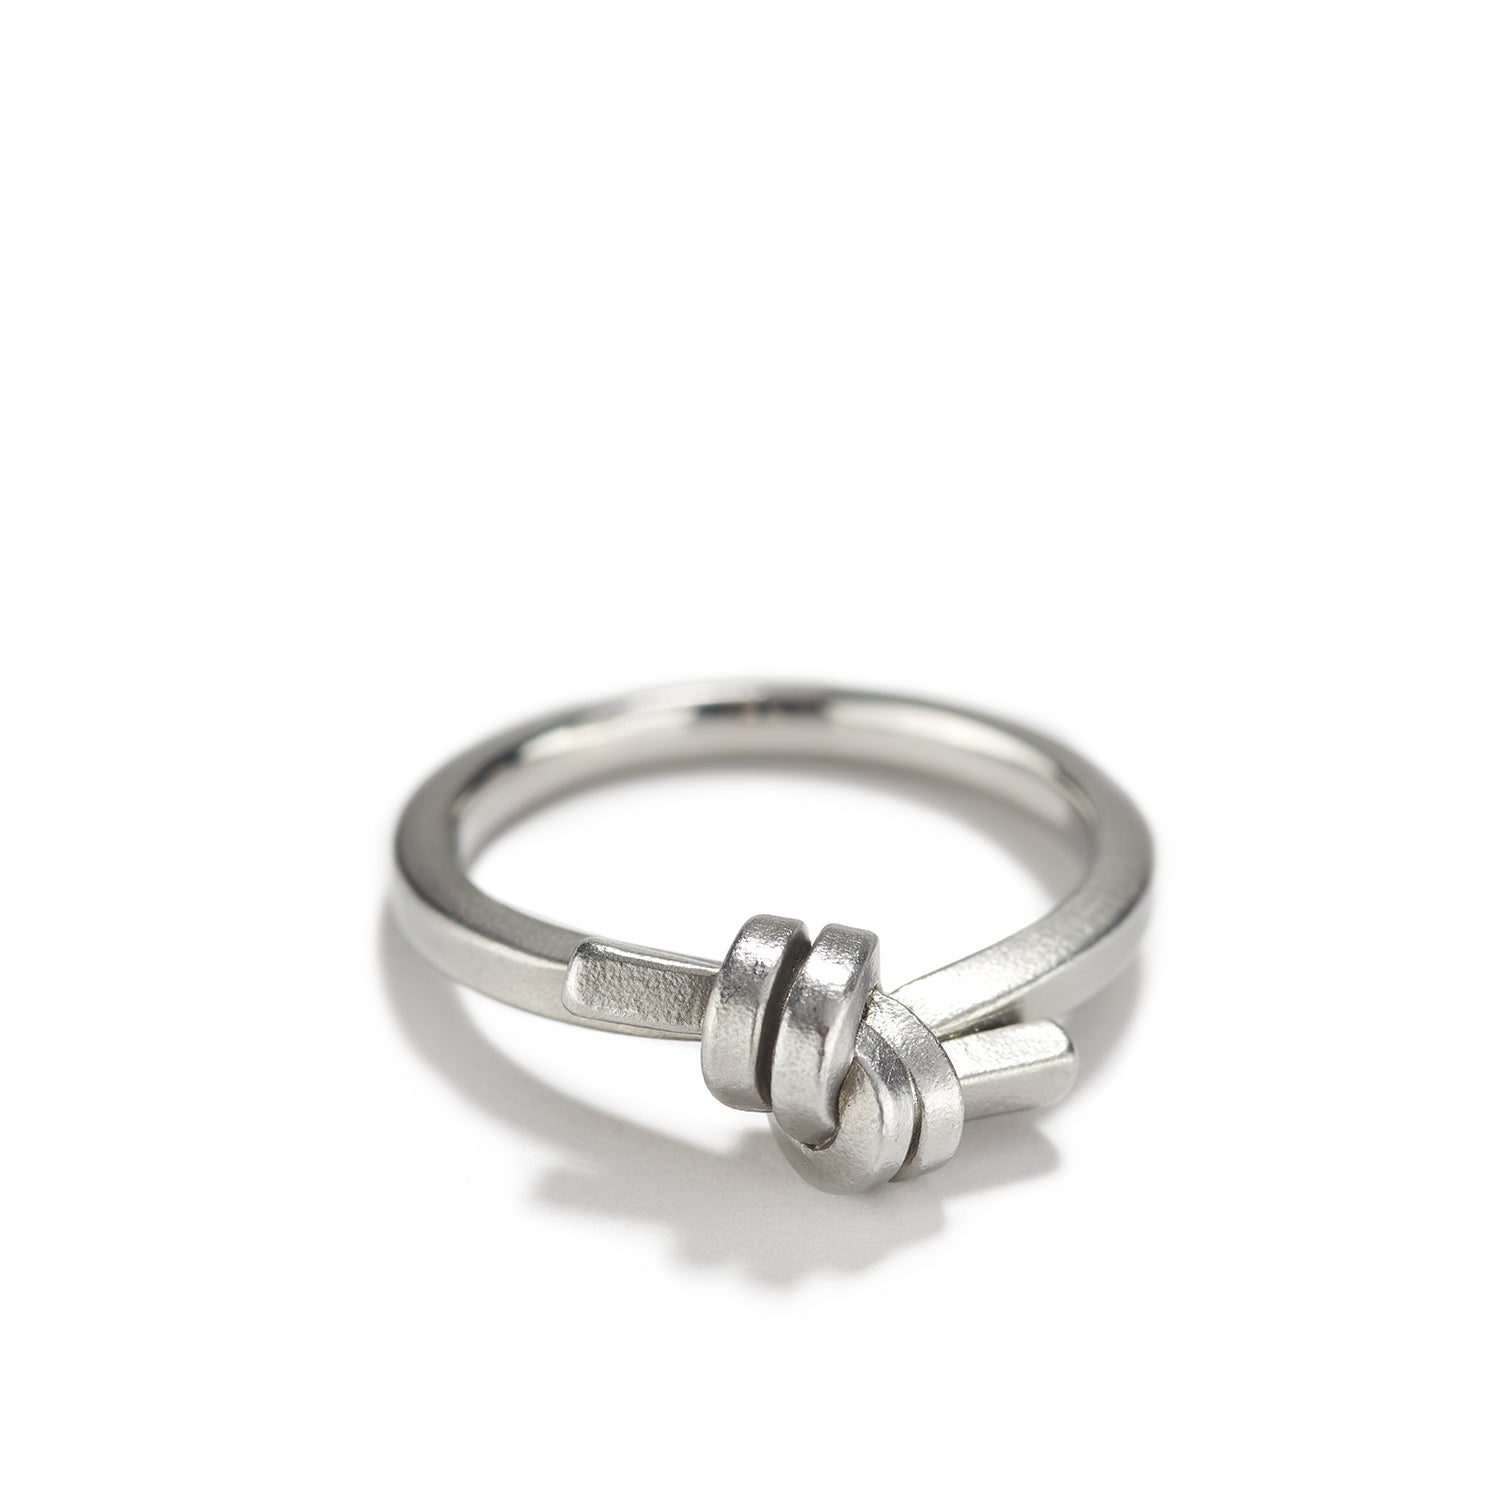 Stainless Steel Maritime Ring~2.5